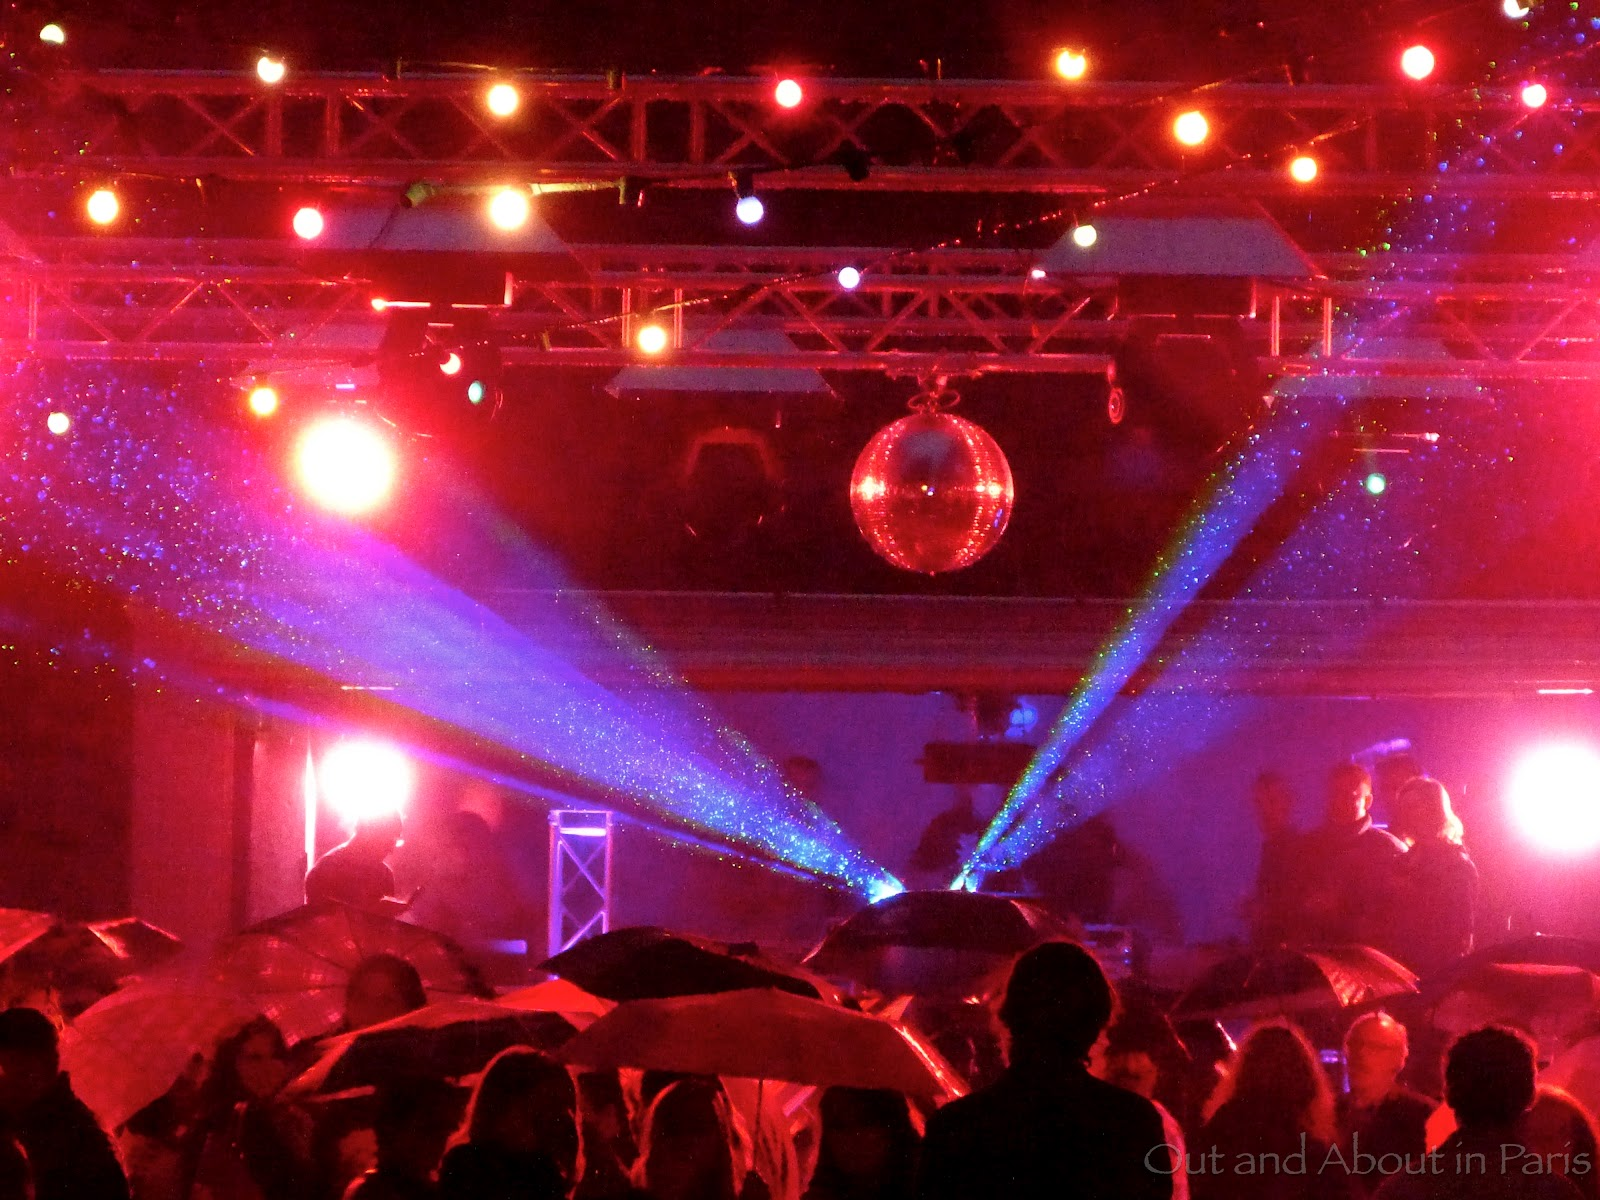 Friday night at the Firemen's Ball - Bastille Day in Paris on